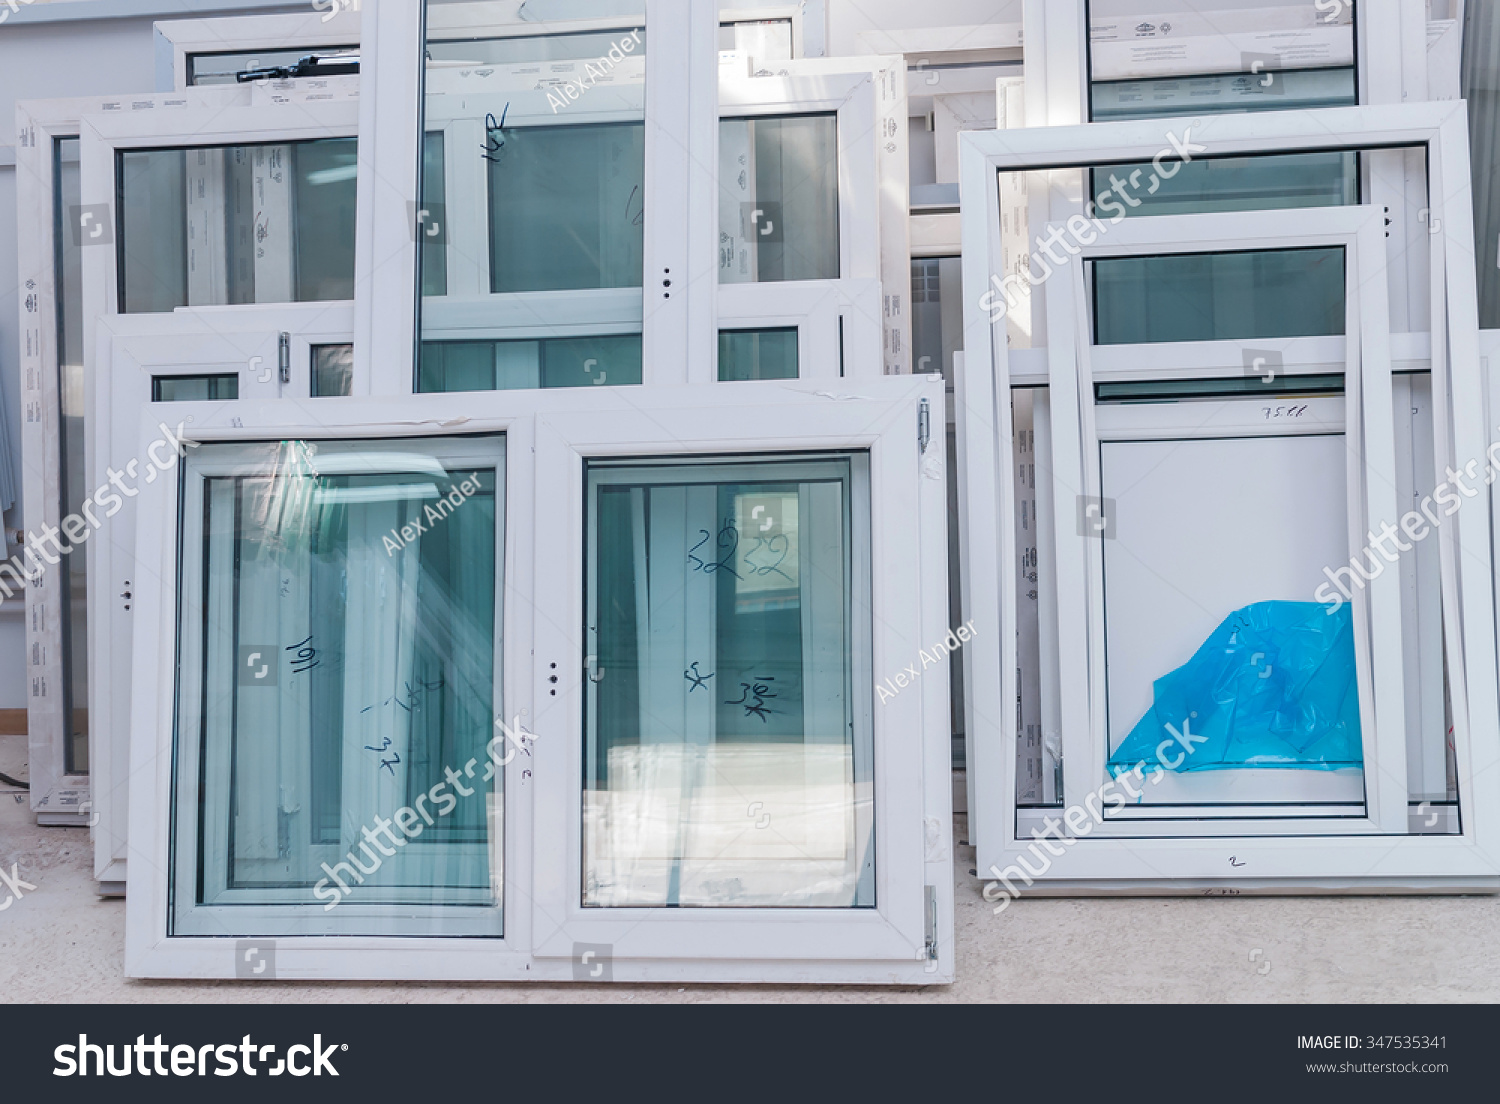 Upvc windows doors manufacturing plastic windows stock for Window factory